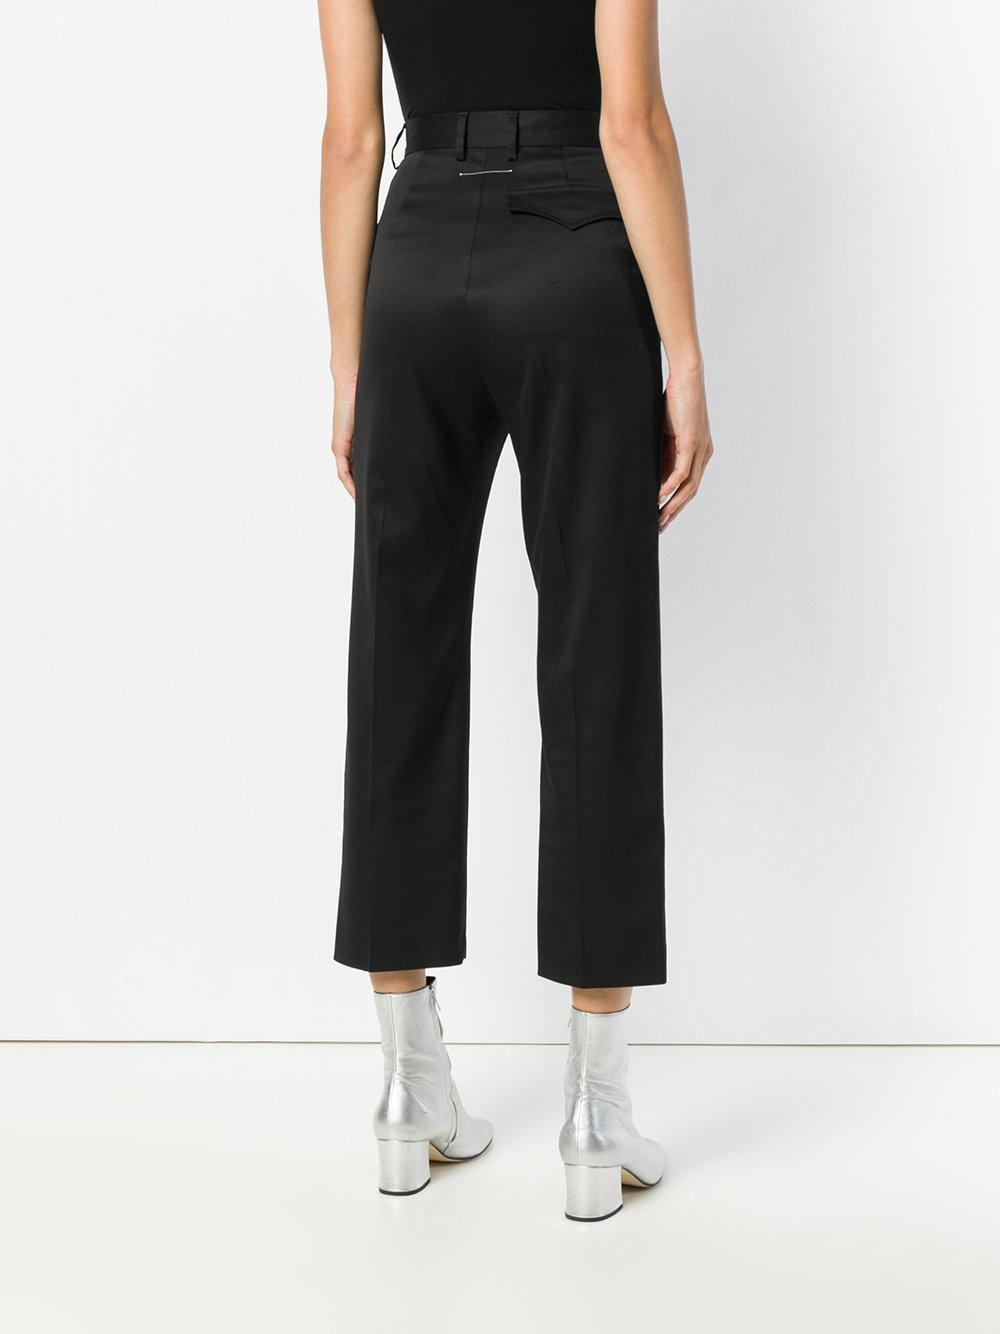 tailored cropped trousers - Black Maison Martin Margiela NBYz2y6jI